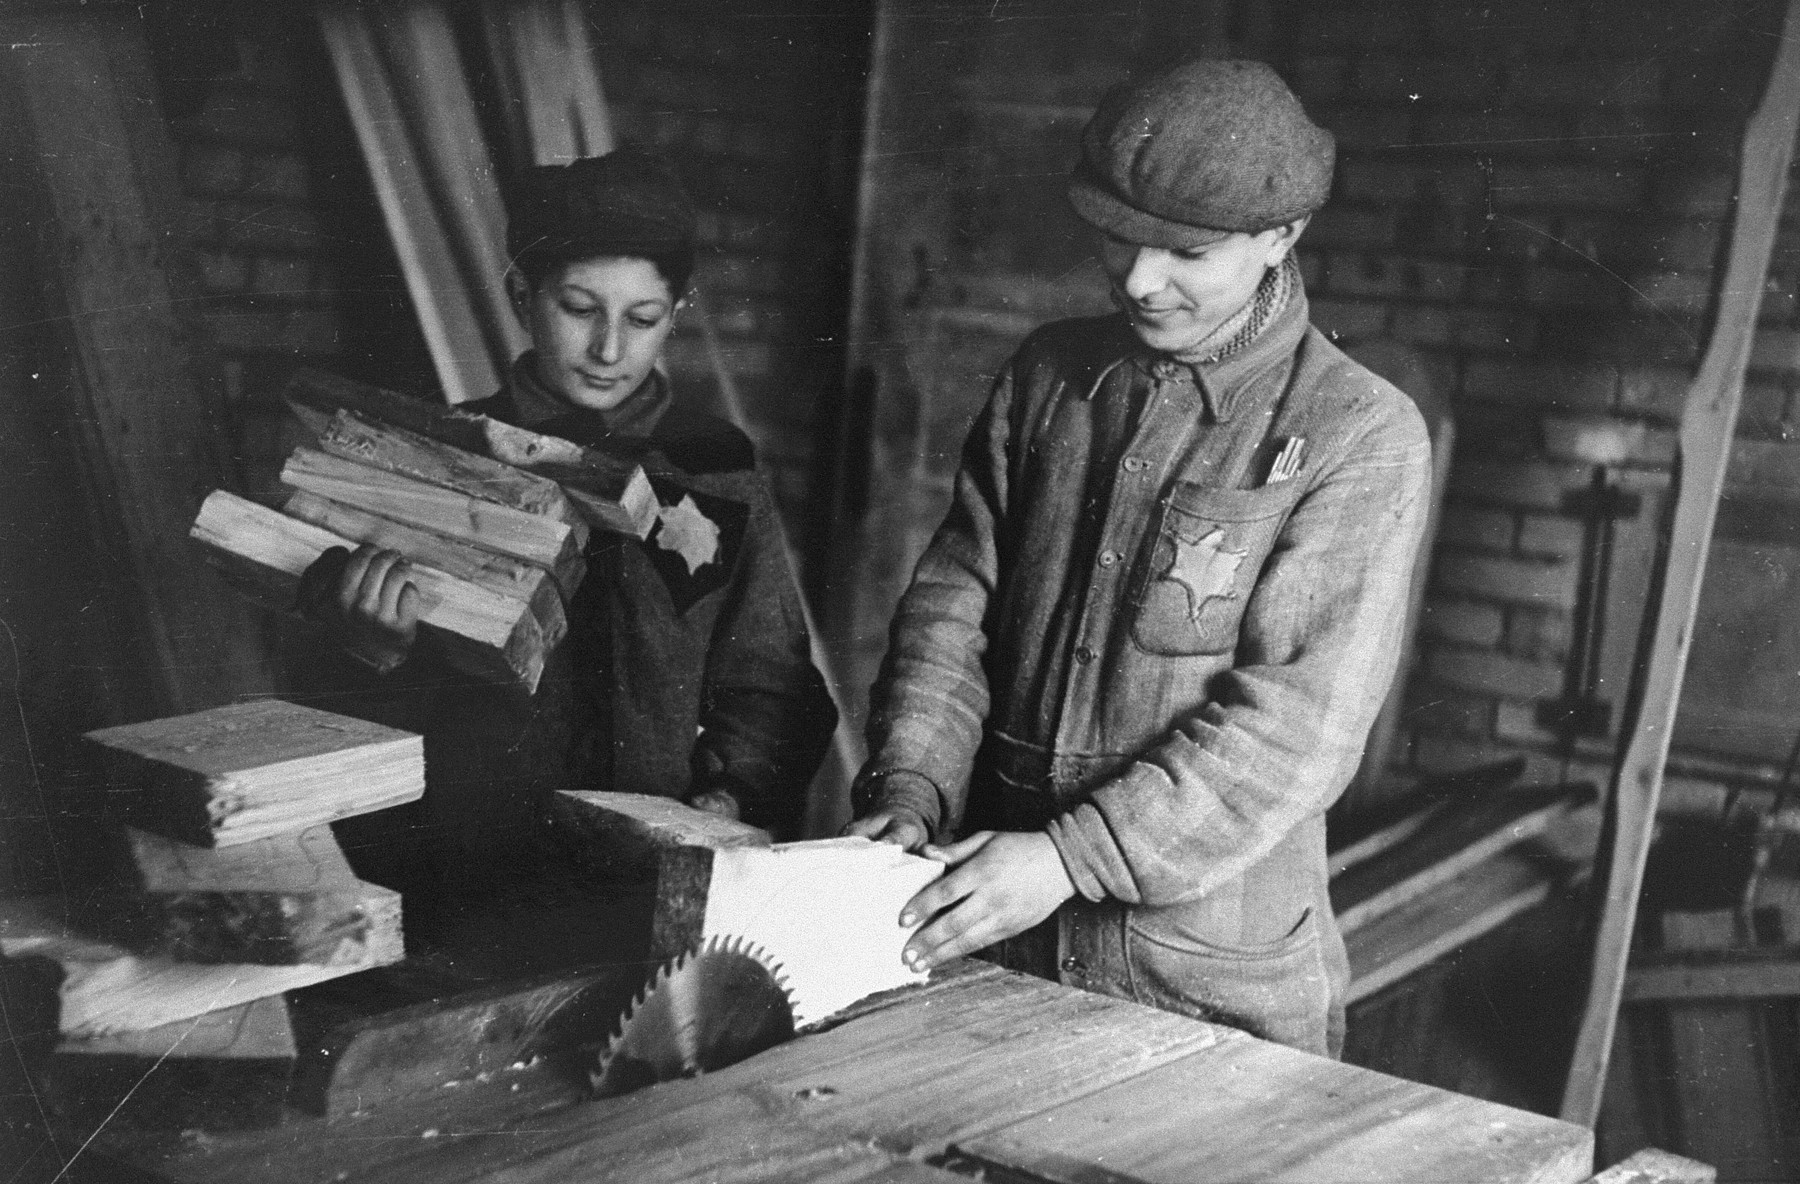 Two youths working in a woodworking shop in the Kovno ghetto.    Pictured at the left is Daniel Bursztyn, son of the Yiddish writer Michal Bursztyn.